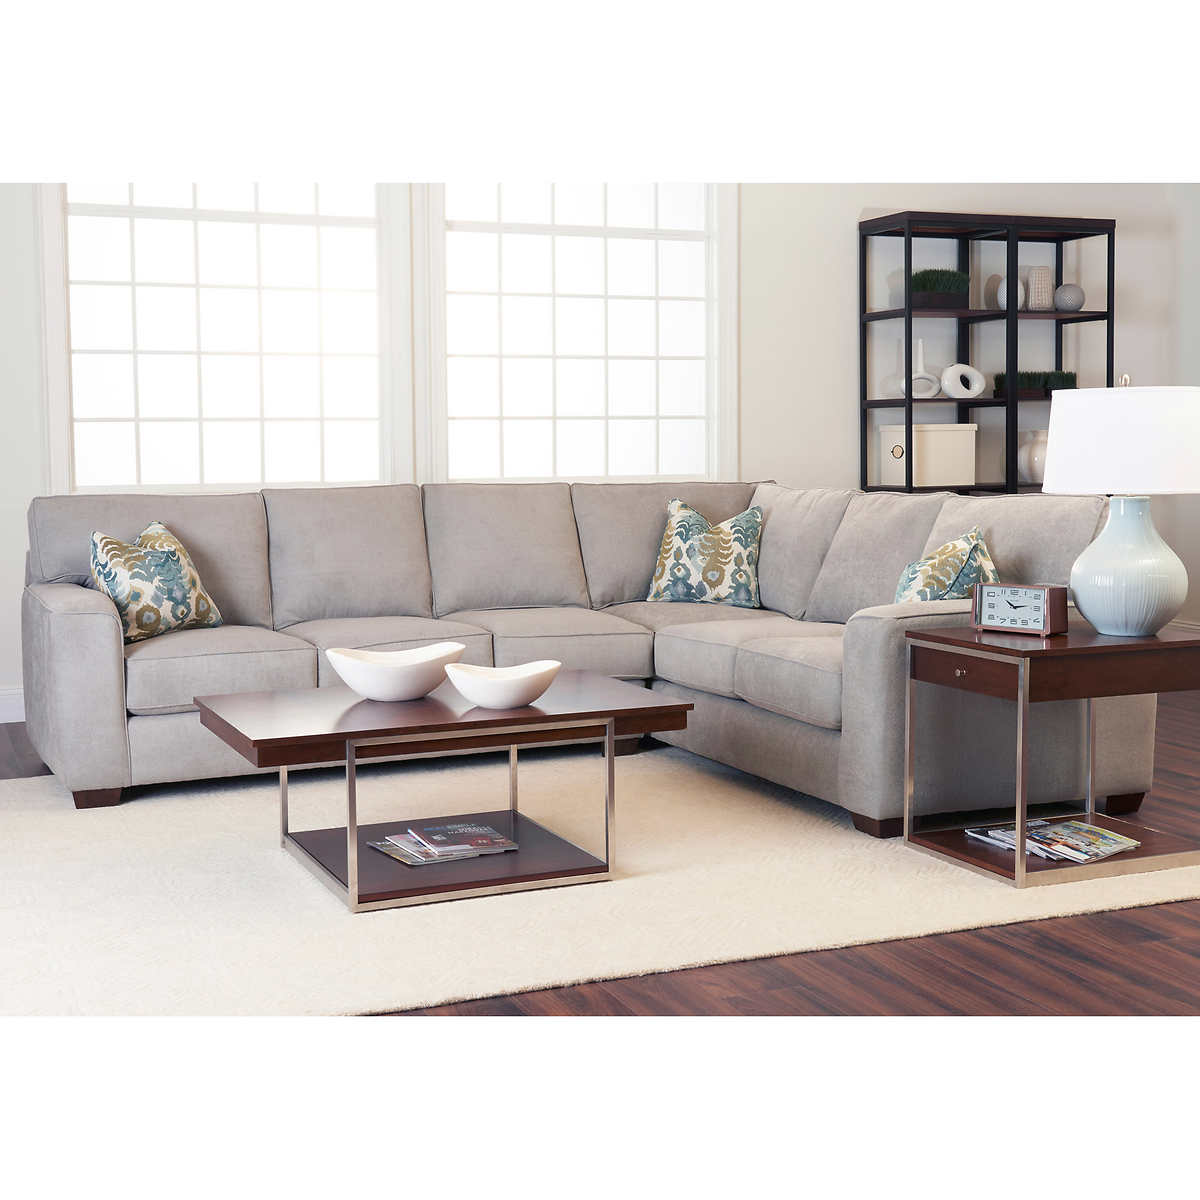 100 two sided sofa best 25 sofa side table ideas for 3 sided dining room table